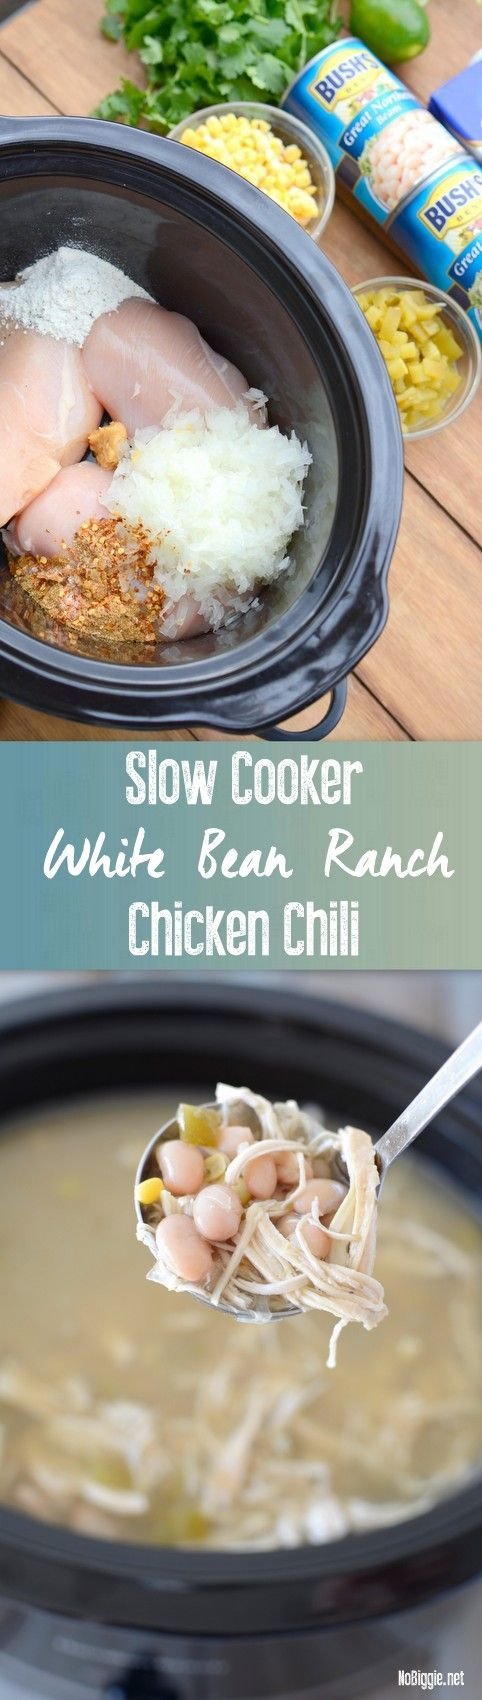 Slow Cooker White Bean Ranch Chicken Chili recipe | - so good and so easy http://NoBiggie.net